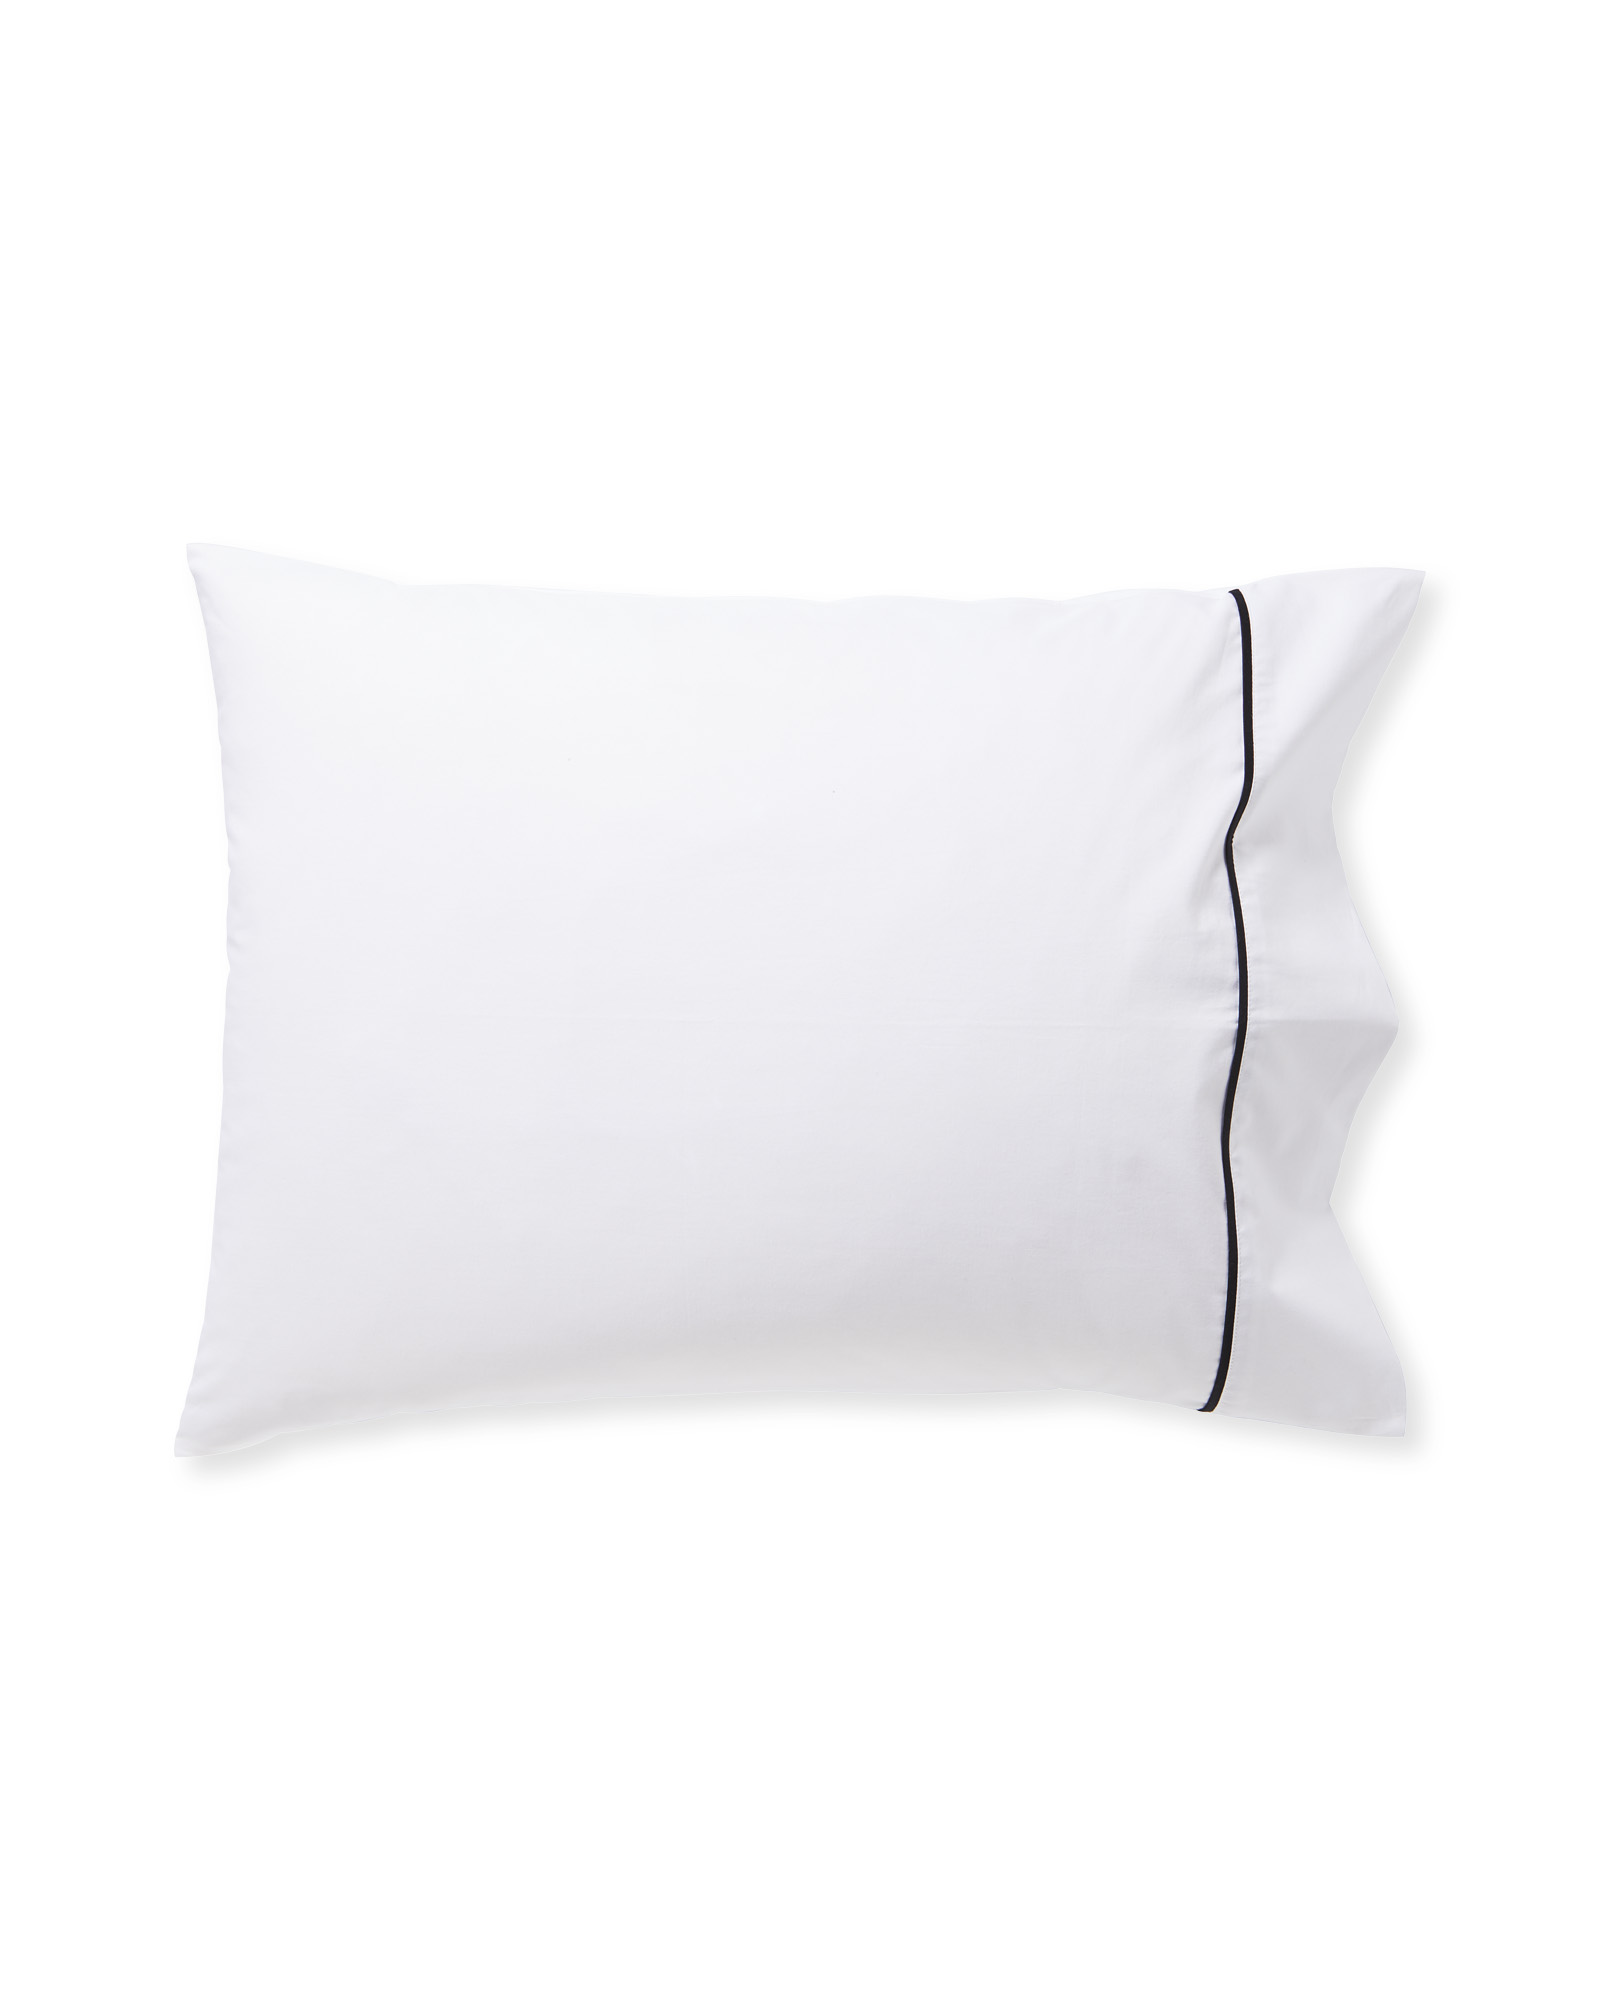 Beach Club Pillowcases (Extra Set of 2), Black